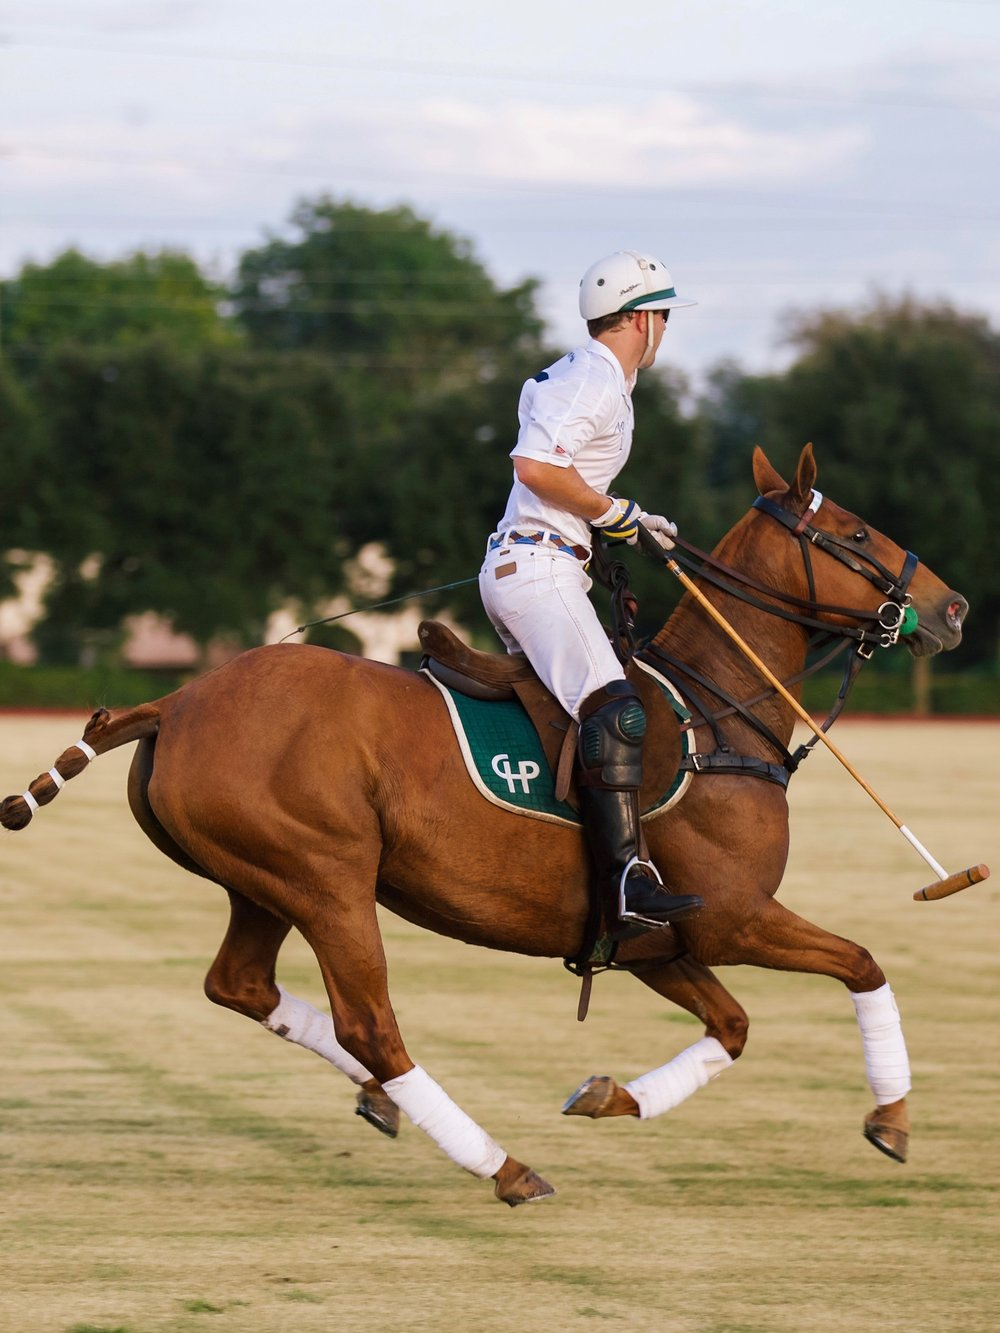 POINT CLEAR POLO OCTOBER-49.jpg